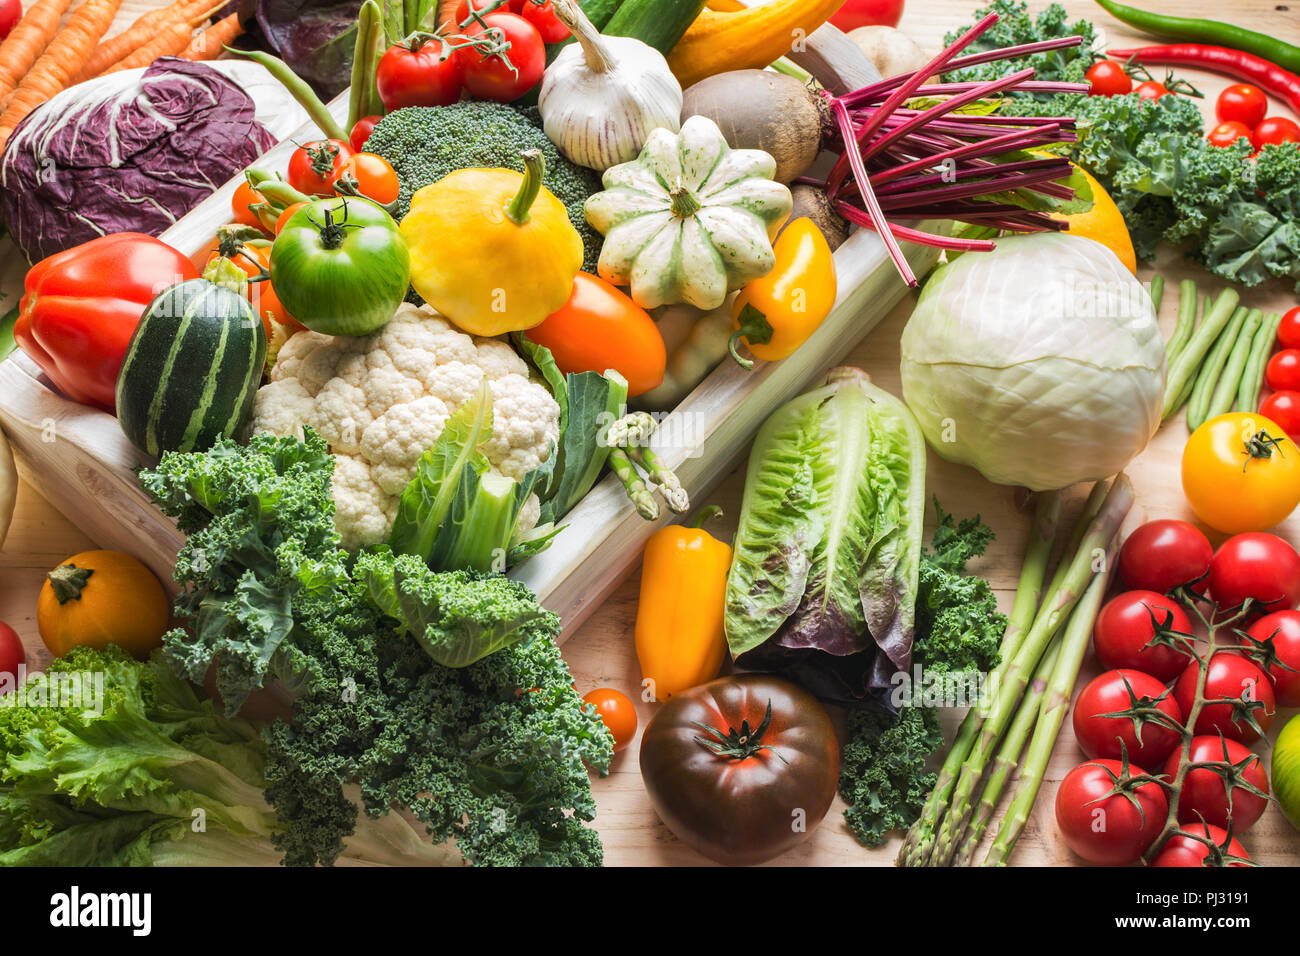 Assortment of fresh colorful organic vegetables in white tray on wooden pine table, food background, selective focus - Stock Image